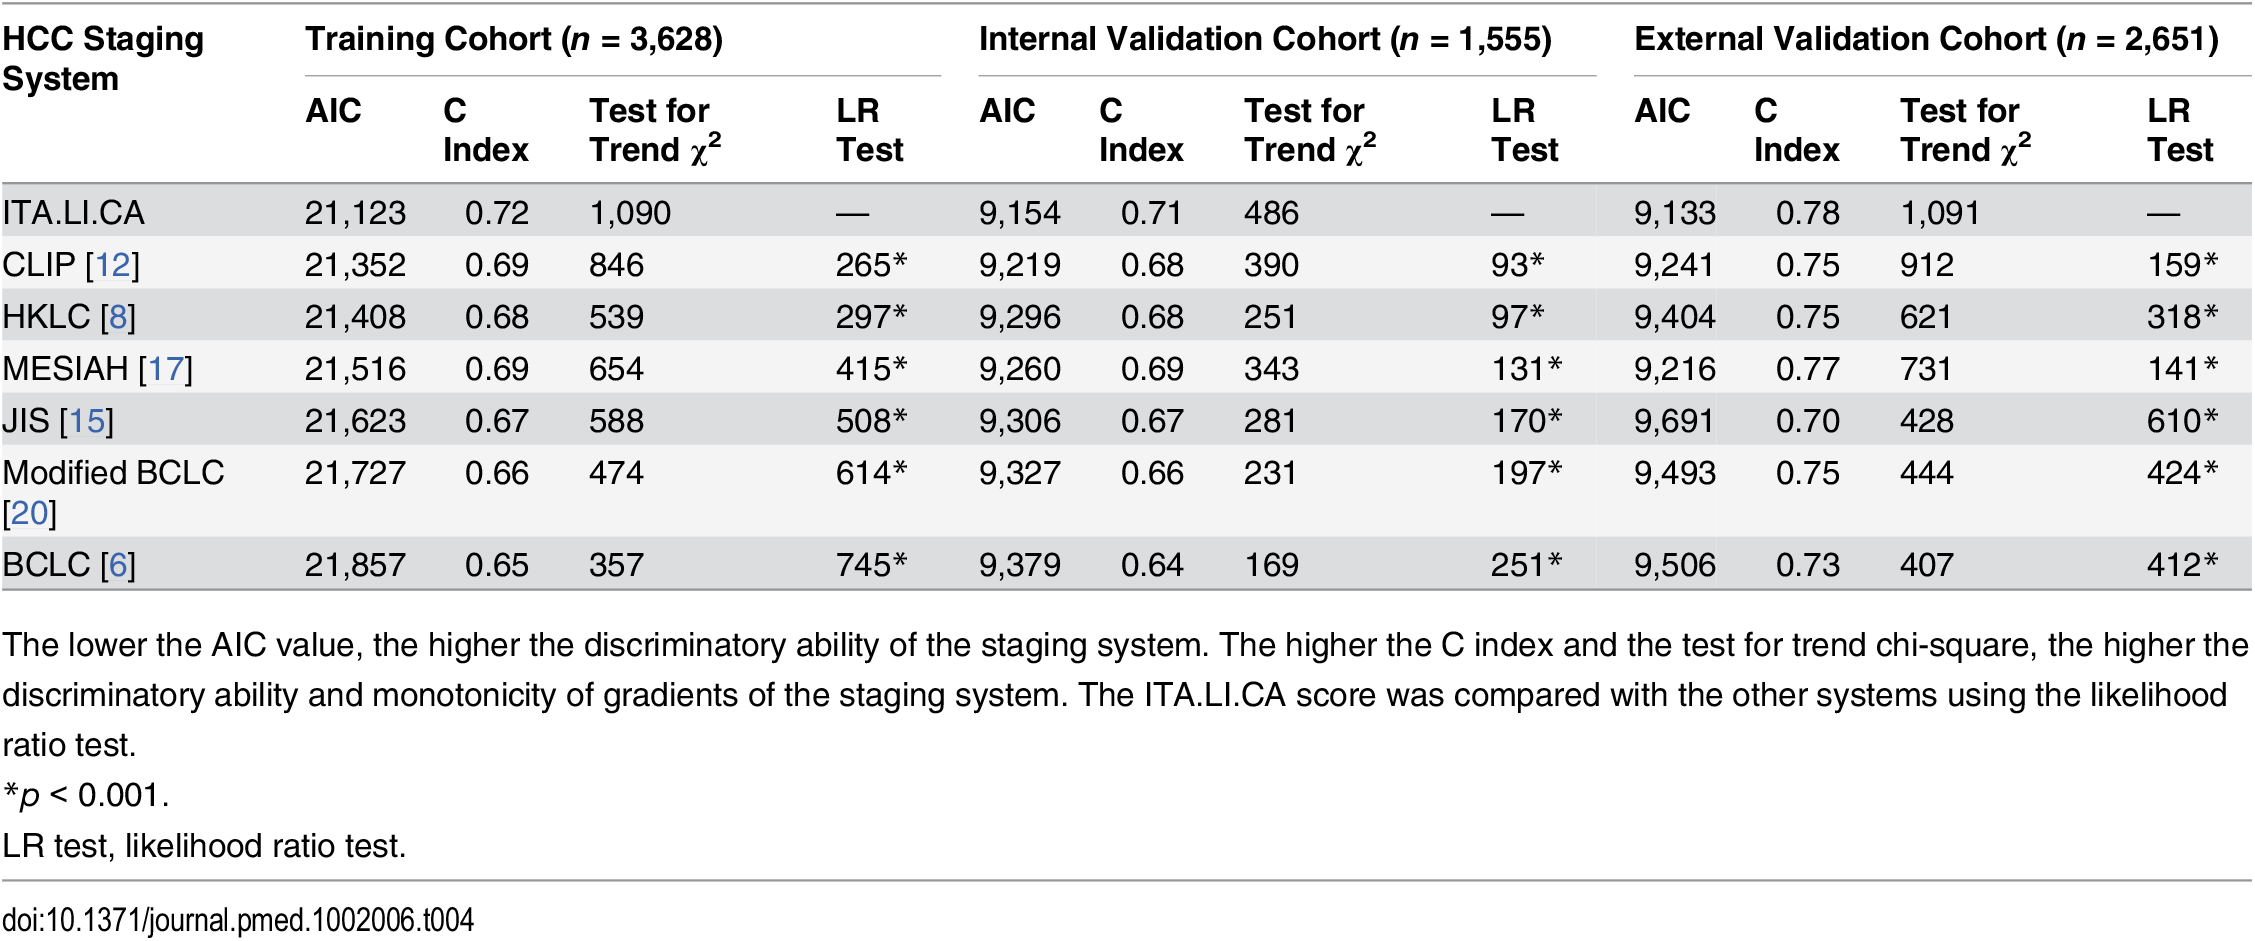 Discrimination ability of the integrated ITA.LI.CA prognostic system and comparison with other staging systems in the training, internal validation, and external validation cohorts.